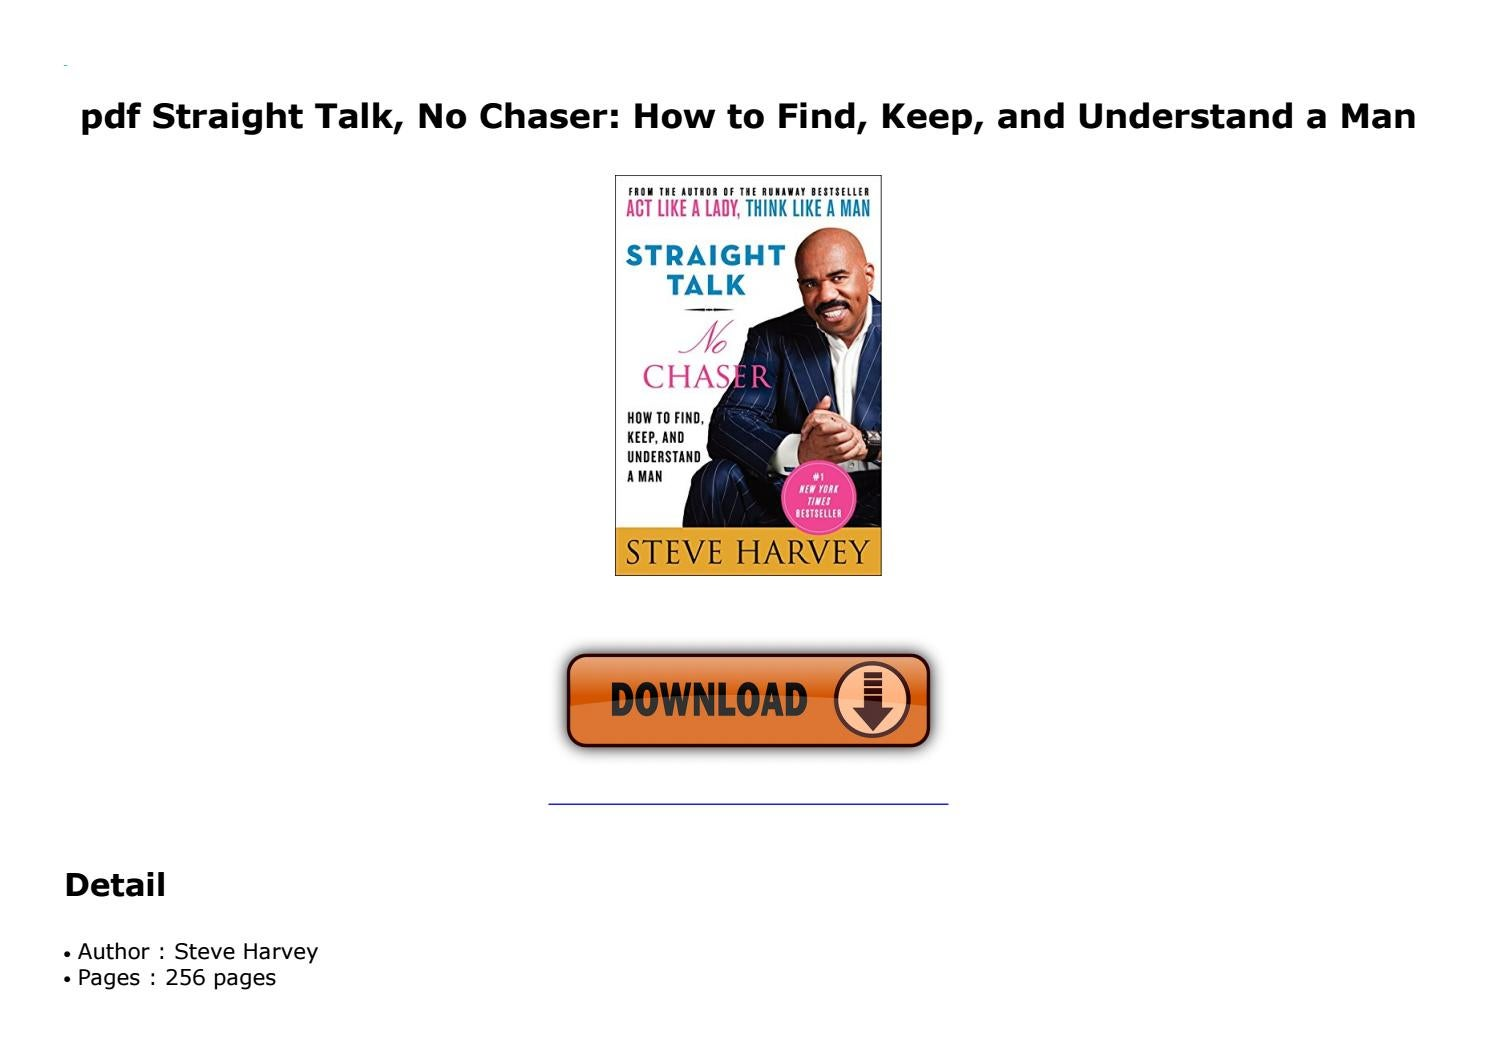 Pdf Straight Talk No Chaser How To Find Keep And Understand A Man By Voltaer1064 Issuu